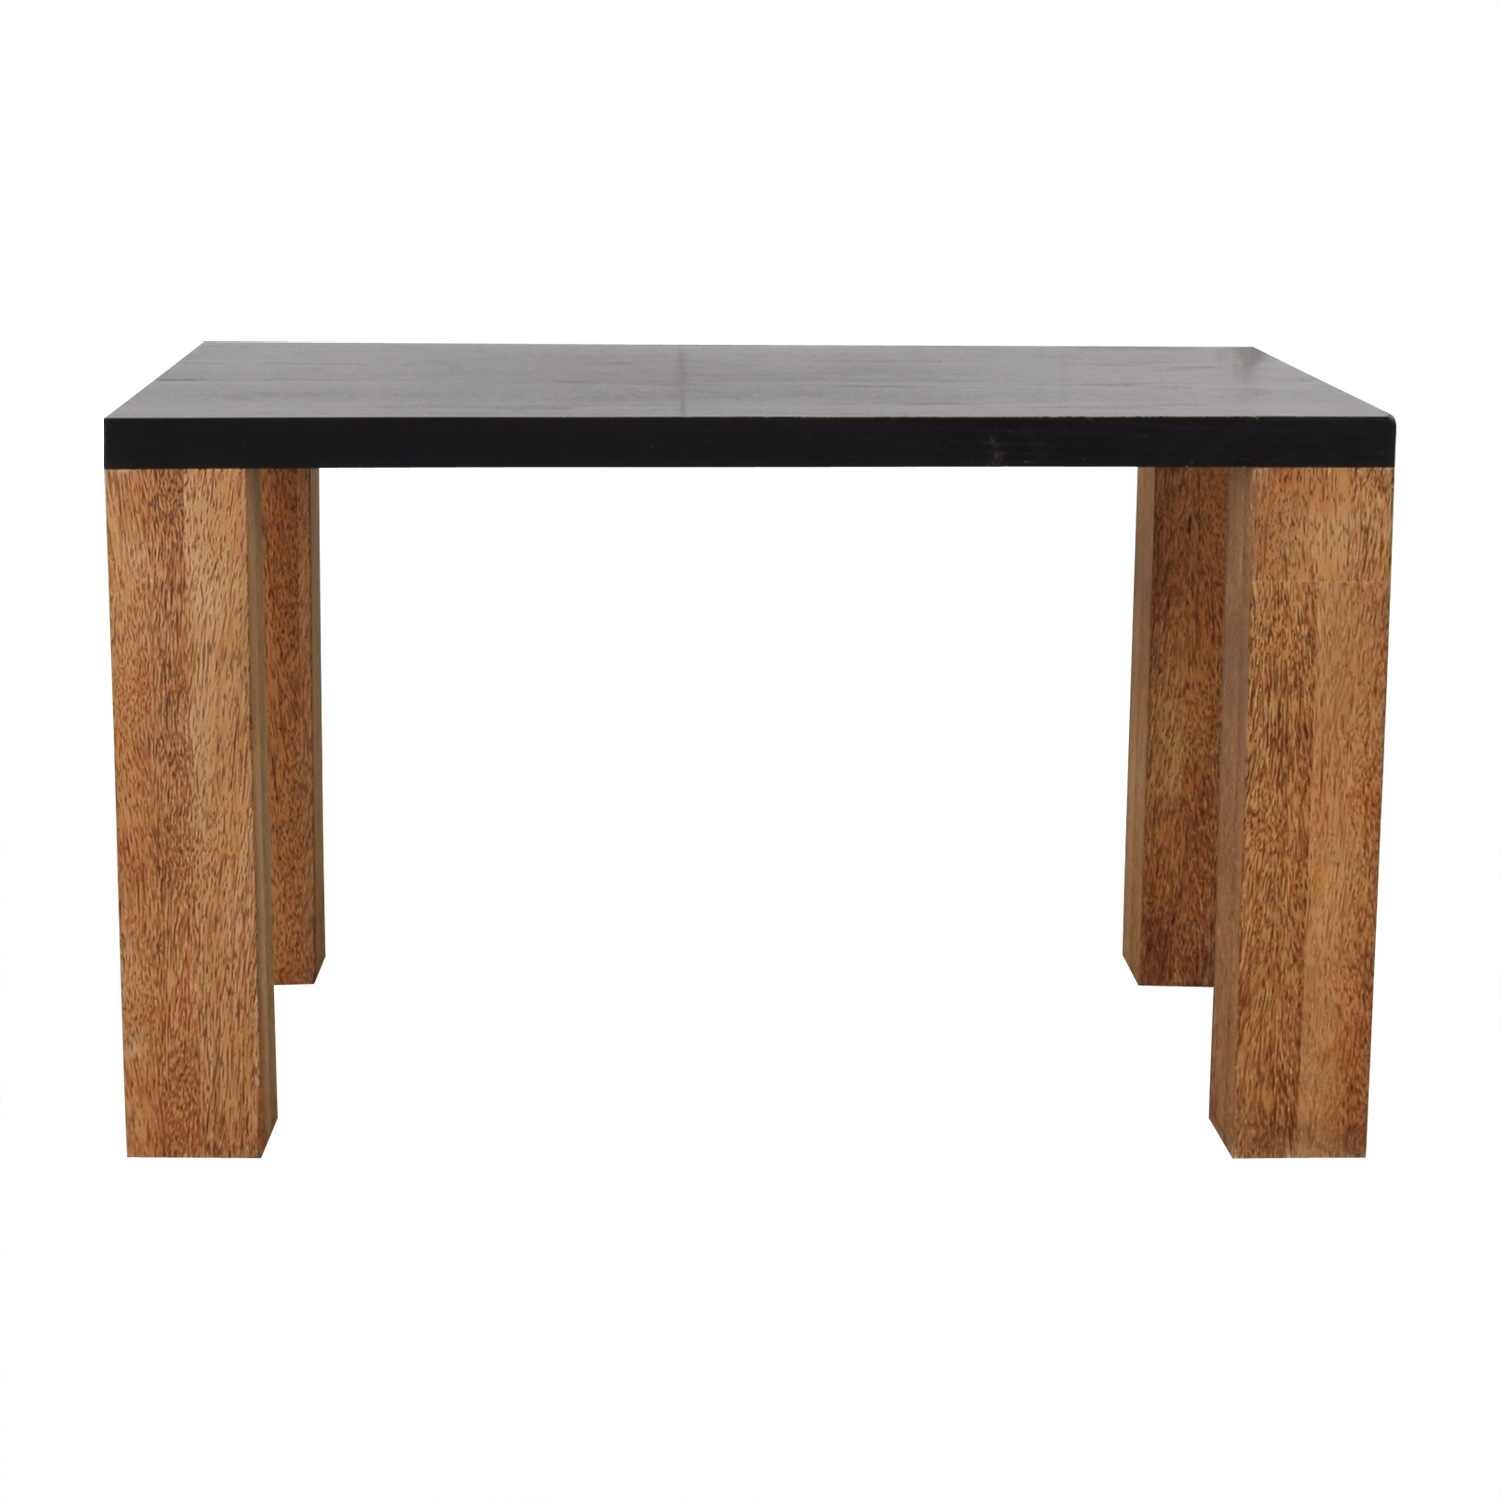 Custom Brazilian Palm Wood and Black Top Dining Table discount